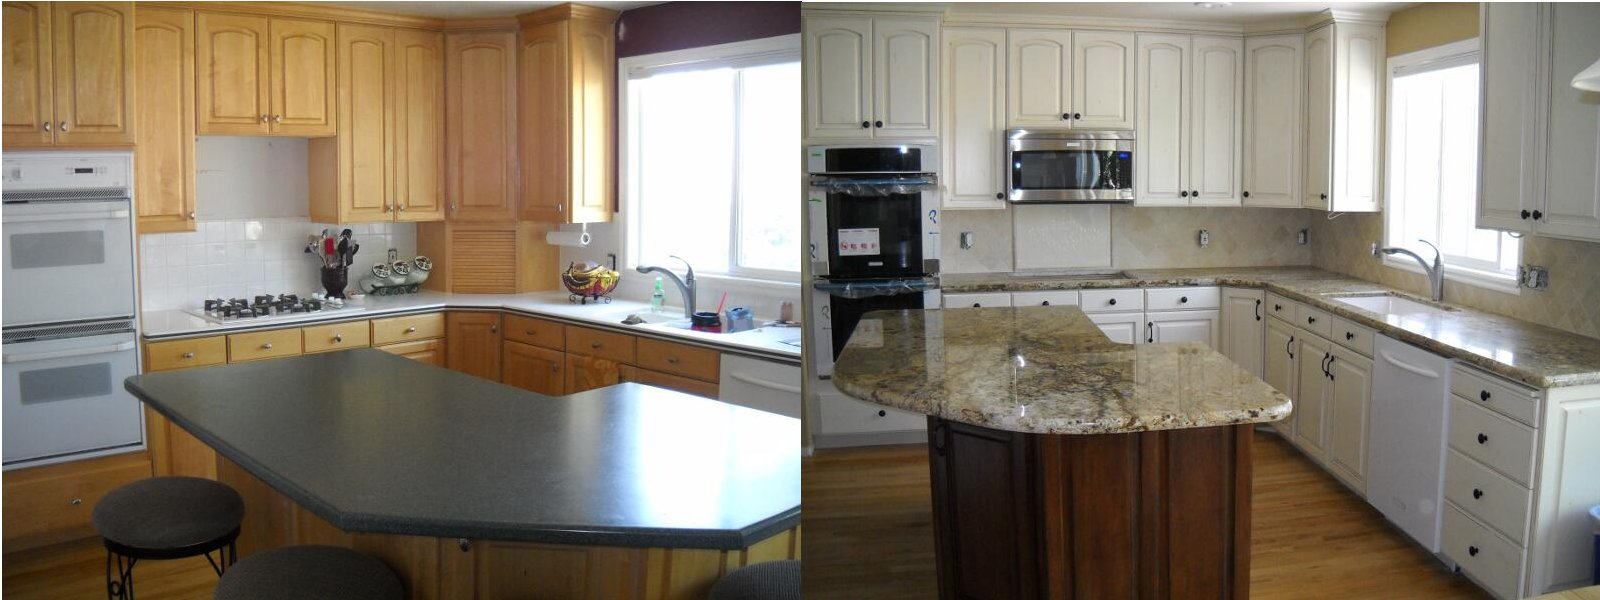 Merveilleux Refinished Cabinets Before And After   Maple Cabinets